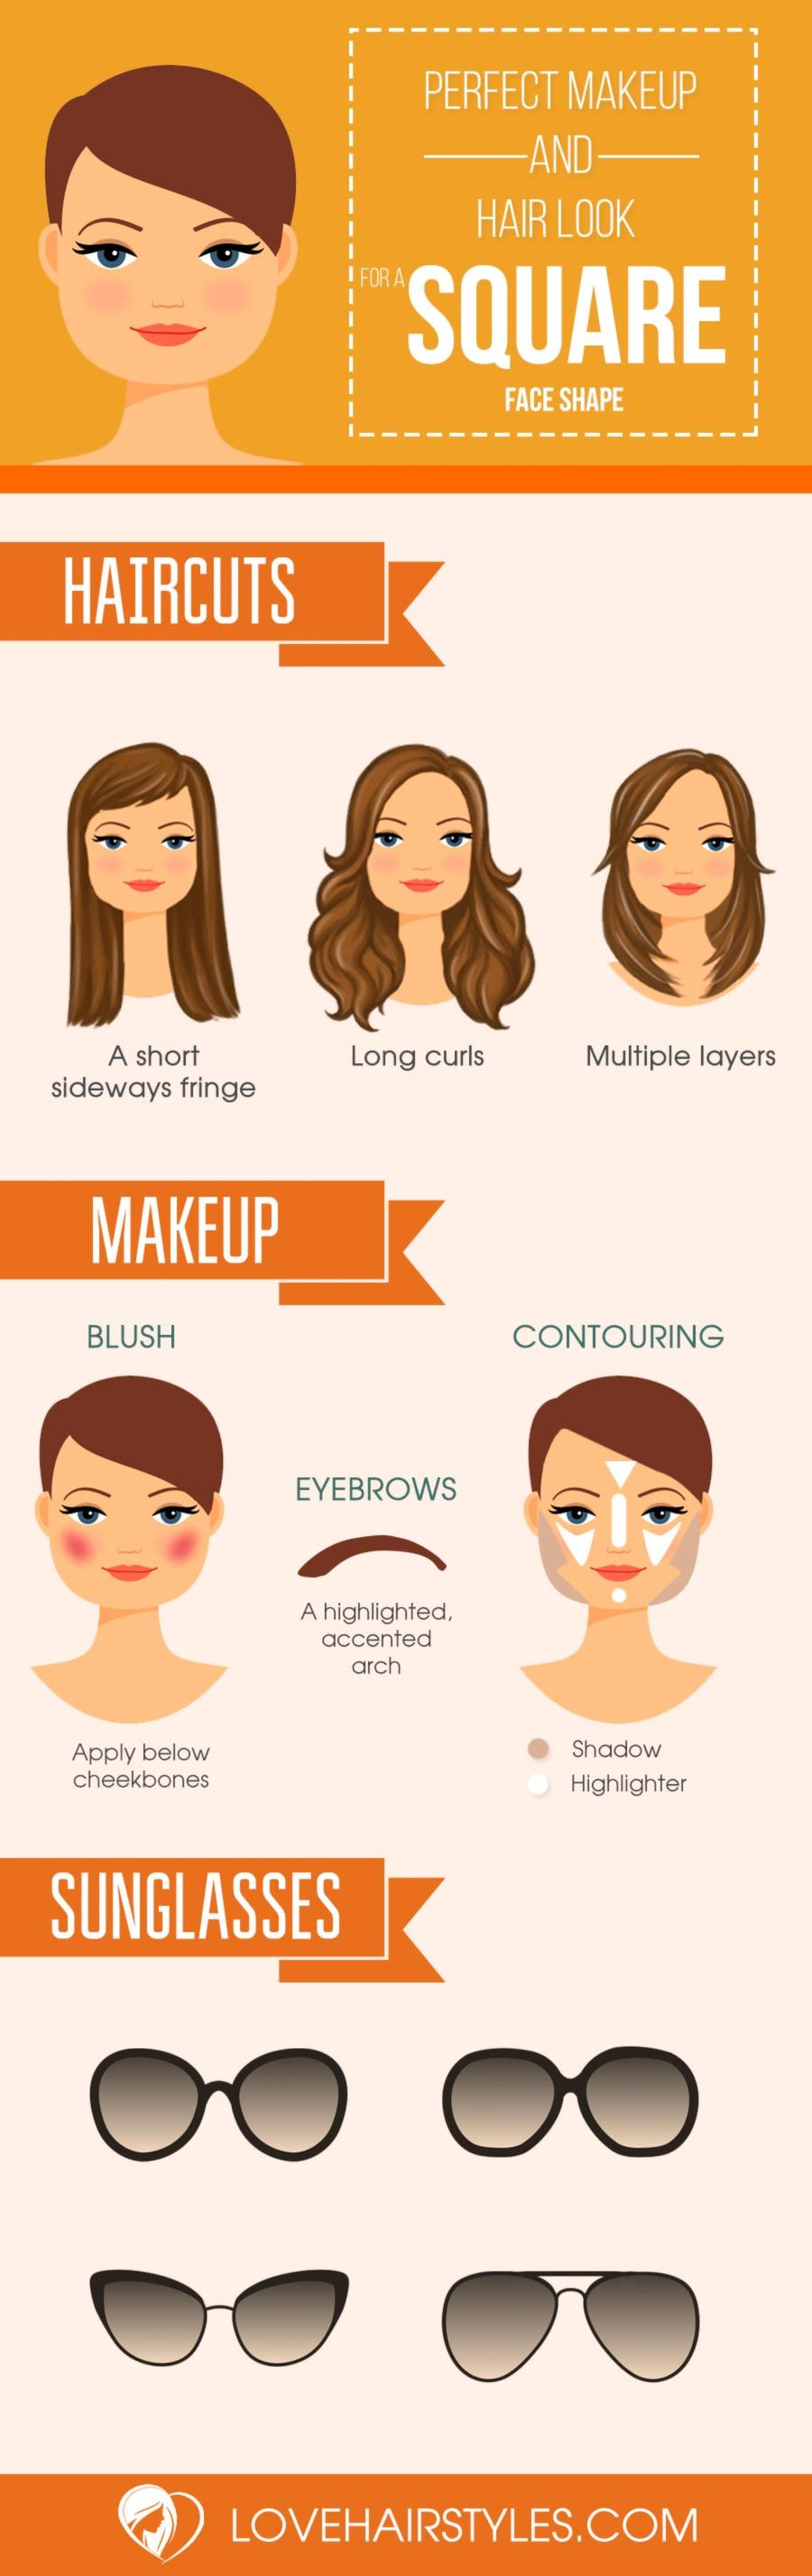 17 sexy hairstyles for square faces | makeup | saç kesimi